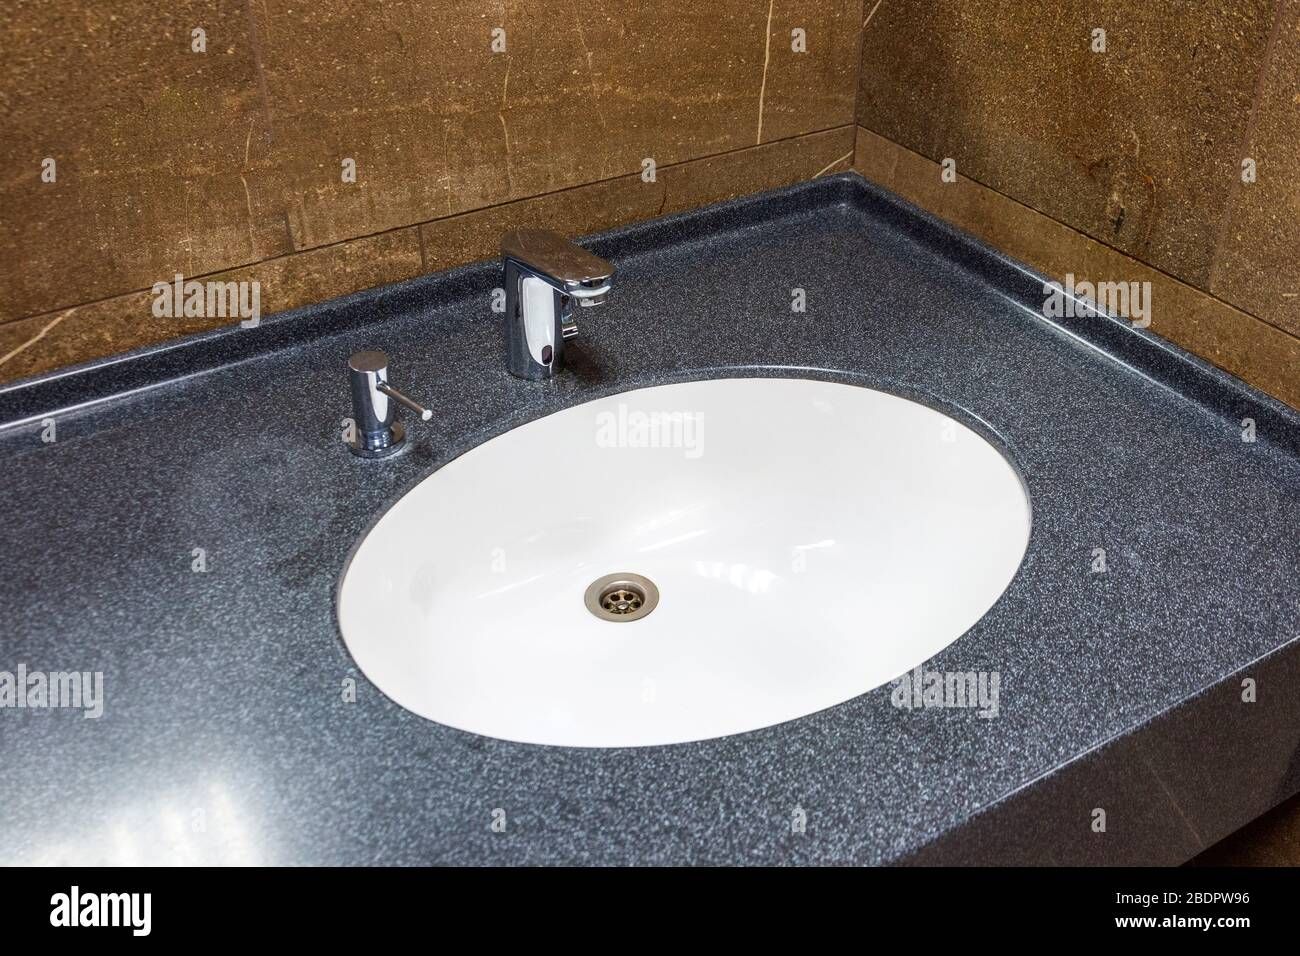 White Sink In Brown Marble Countertop With Chrome Shiny Faucet And Integrated Dispenser For Liquid Soap Stock Photo Alamy